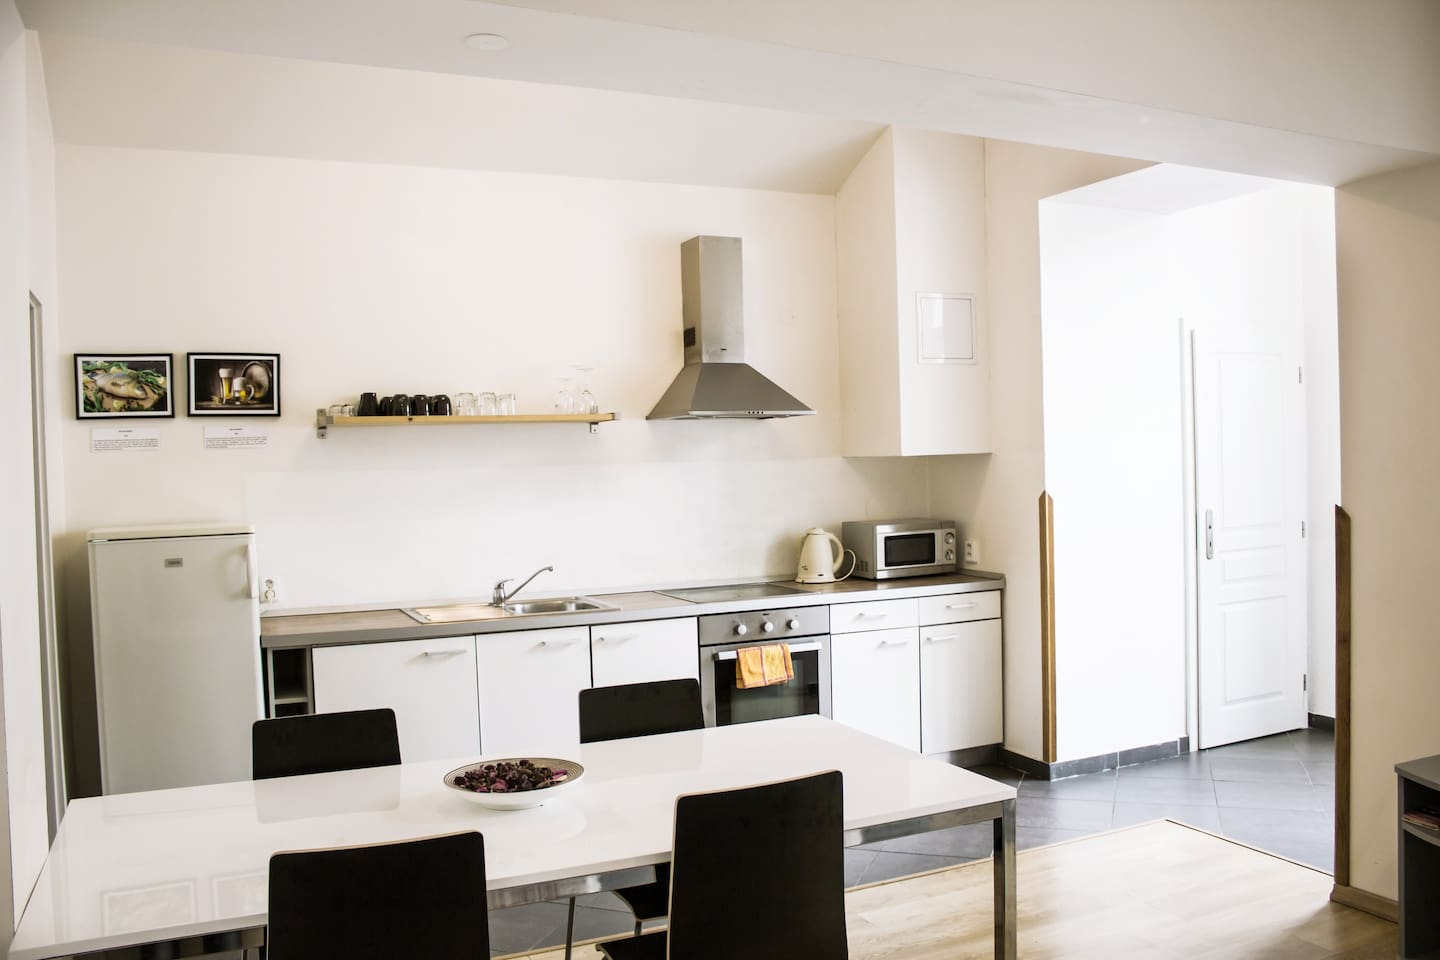 3KK flat - Family/friendly flat close to center - Apartments for ...